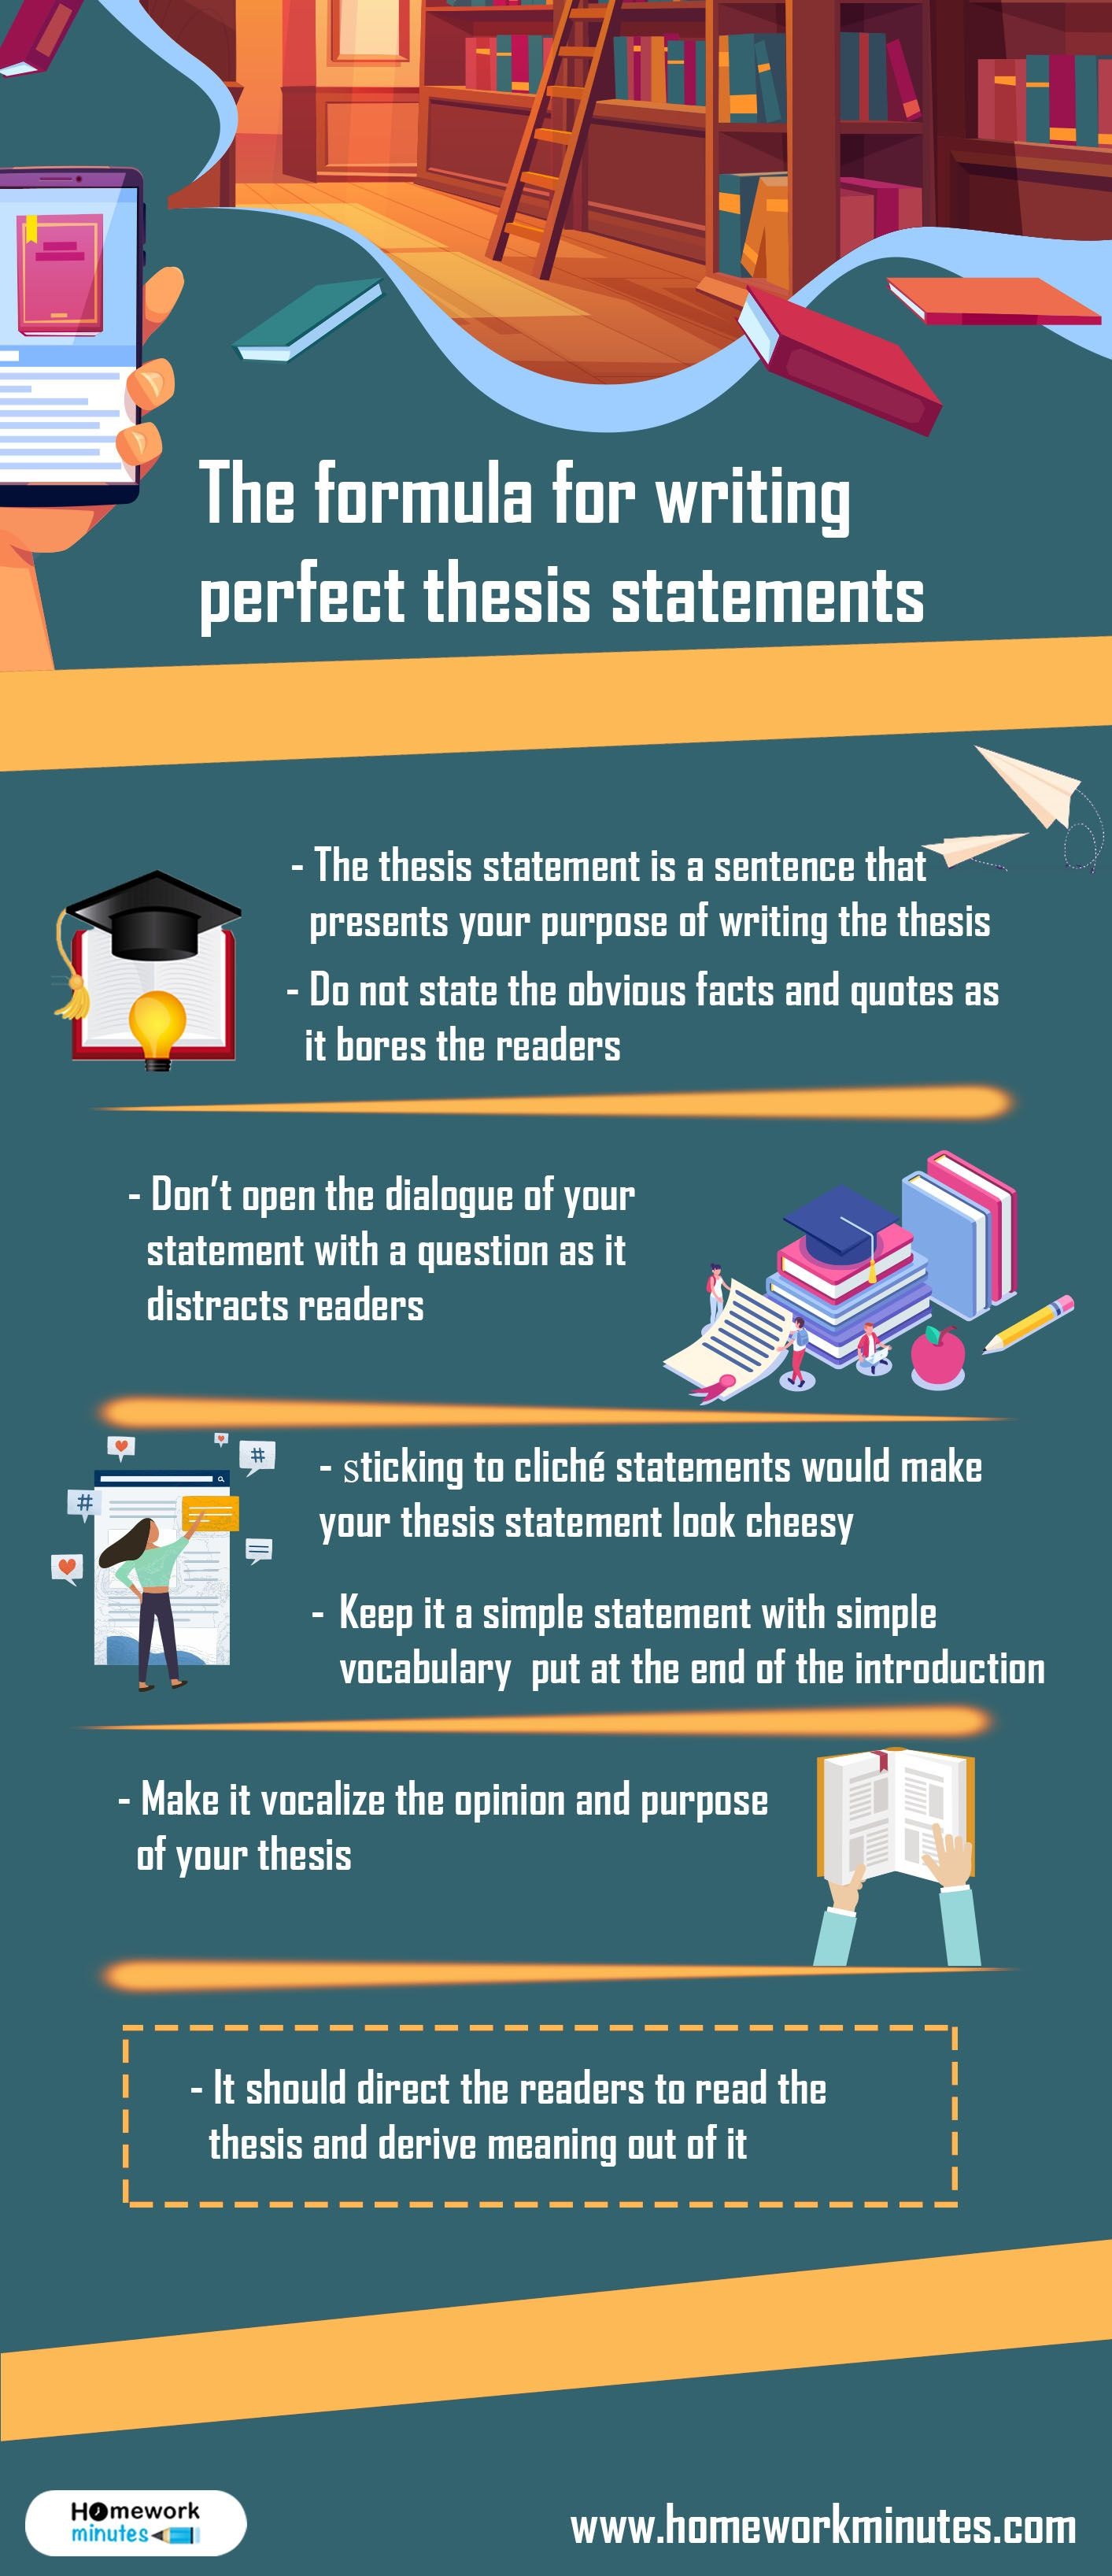 The Formula For Writing Perfect Thesis Statements